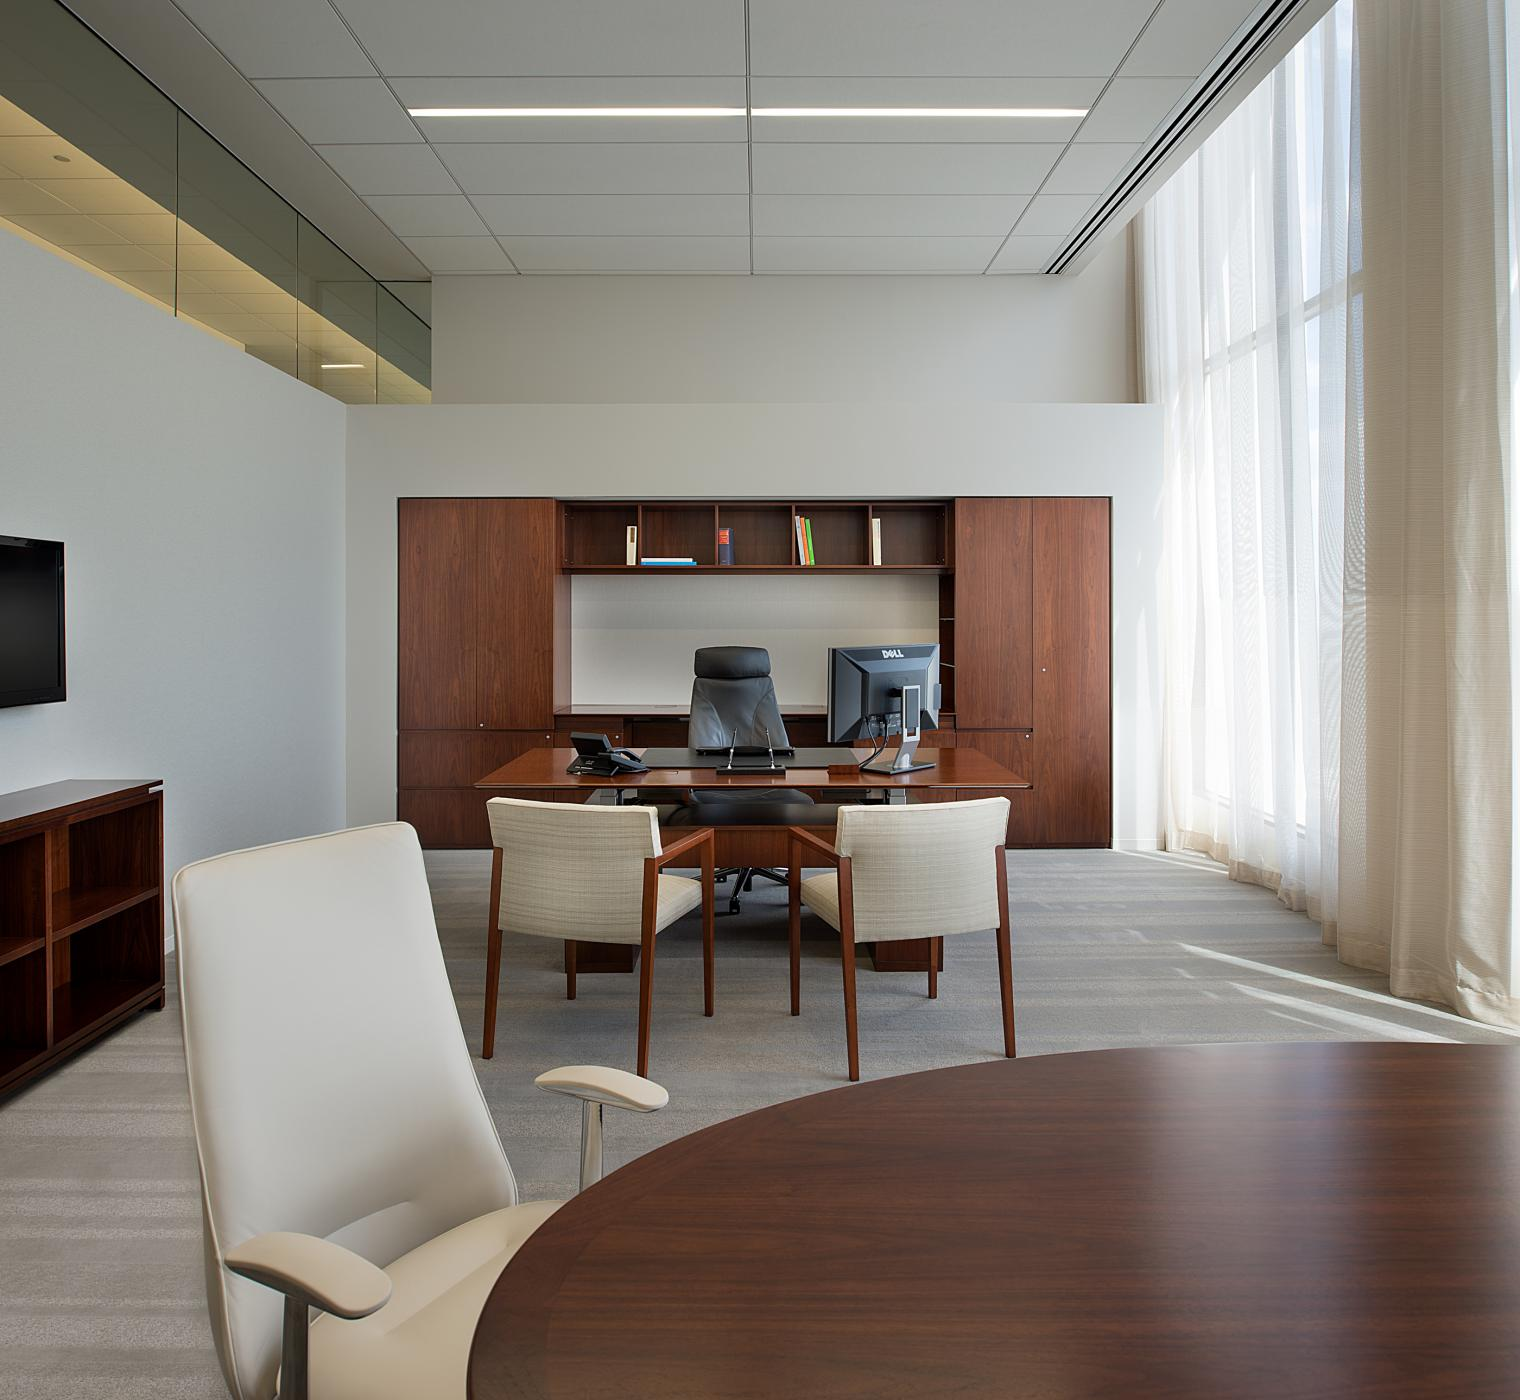 Each private office features a custom built-in workwall, meeting table, bookcase, and sit-to-stand desk.